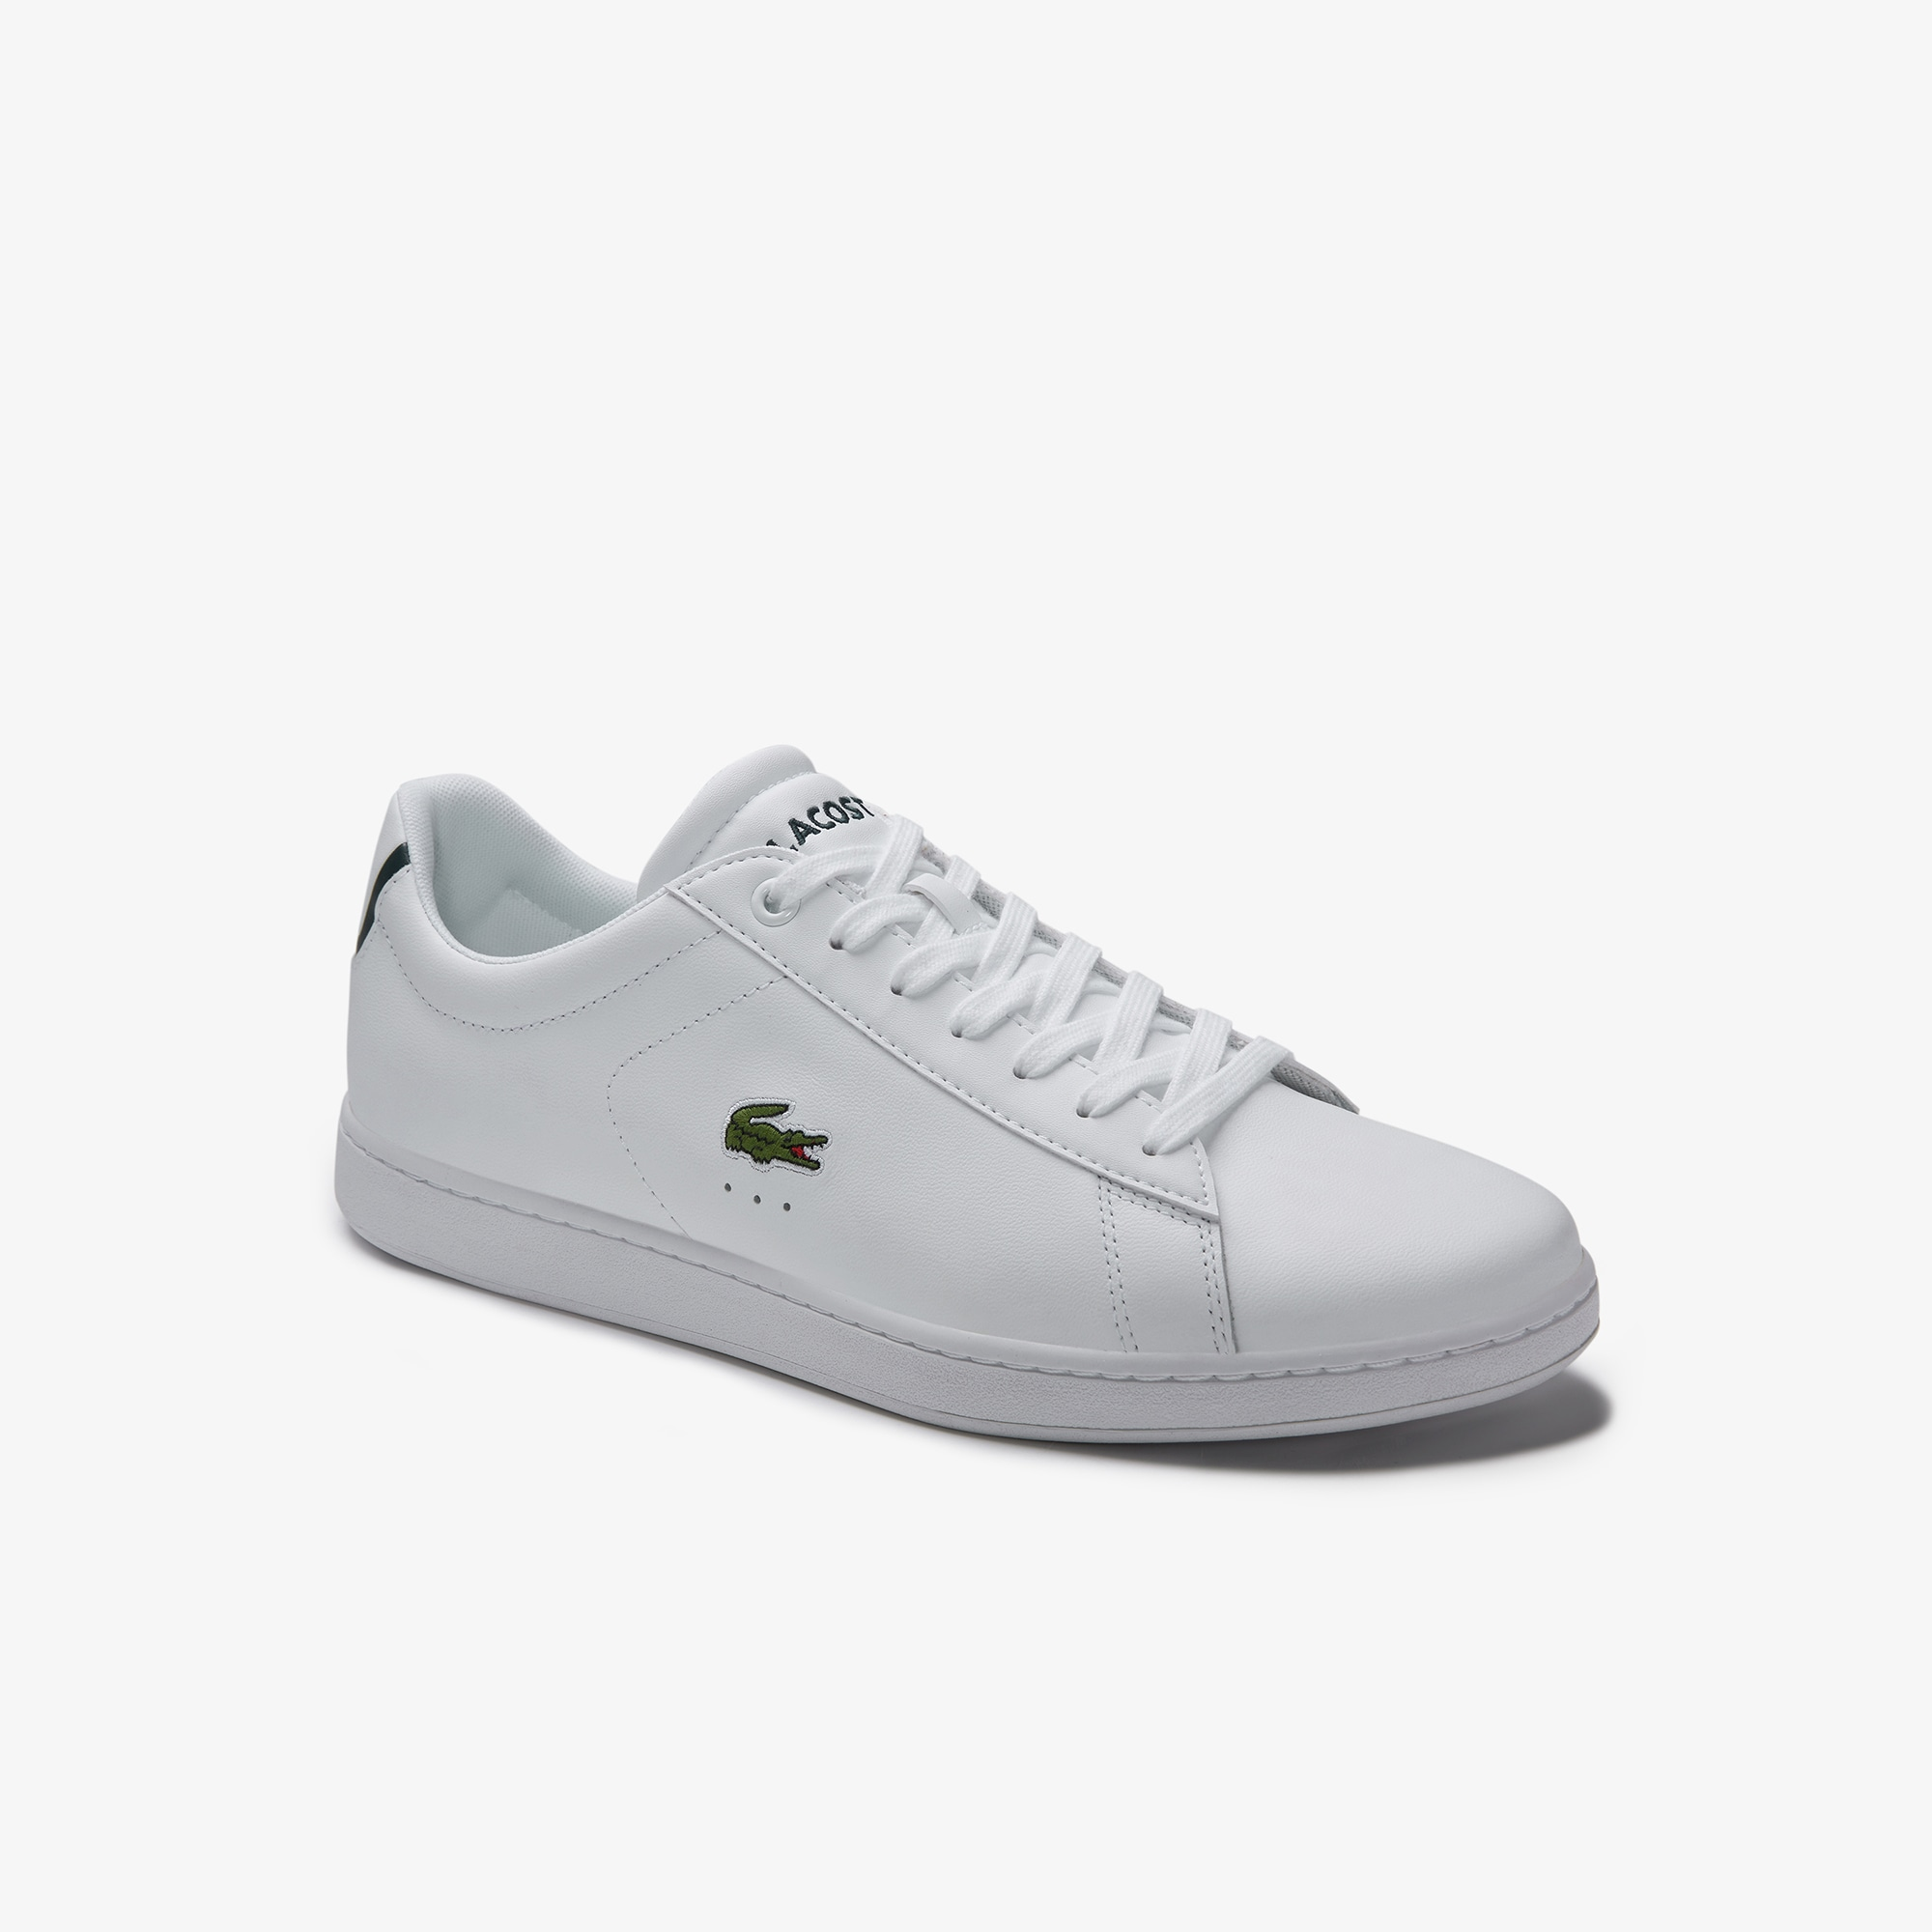 b71b1b2f2cea4 Chaussures homme   Collection Homme   LACOSTE